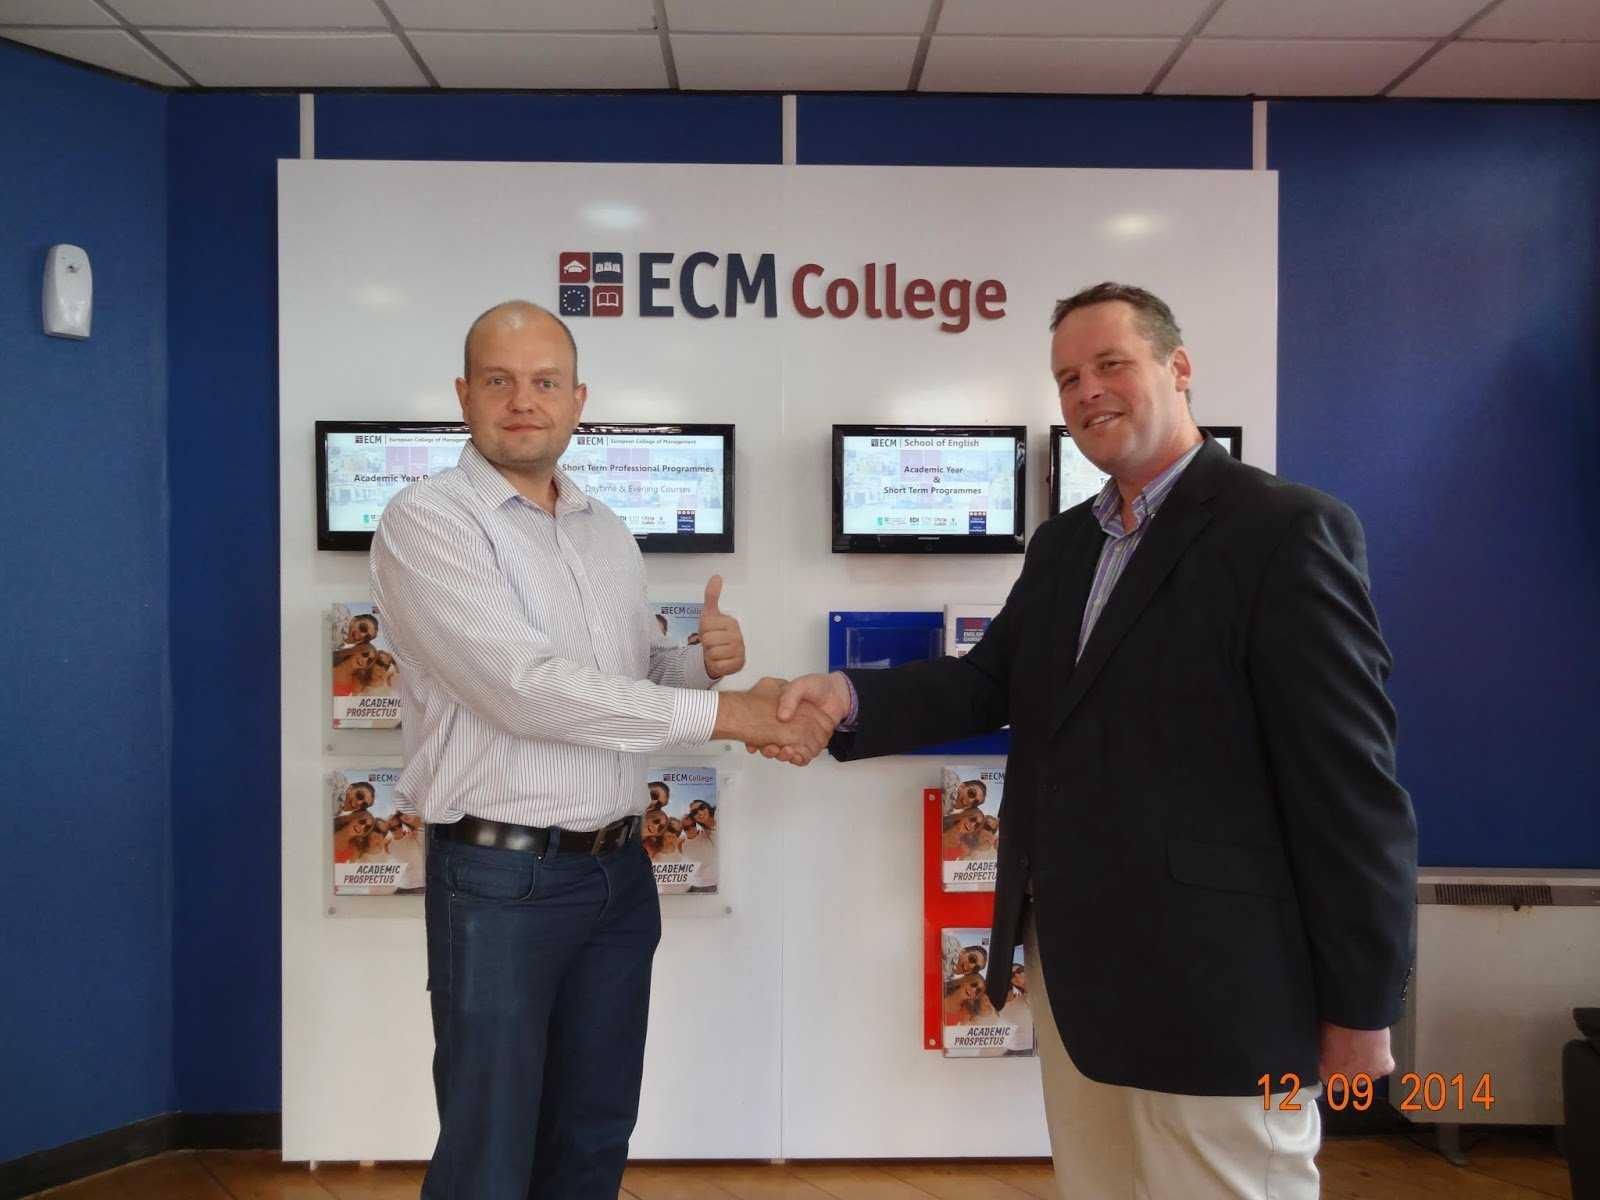 Oleksii Pieshkov at ECM College